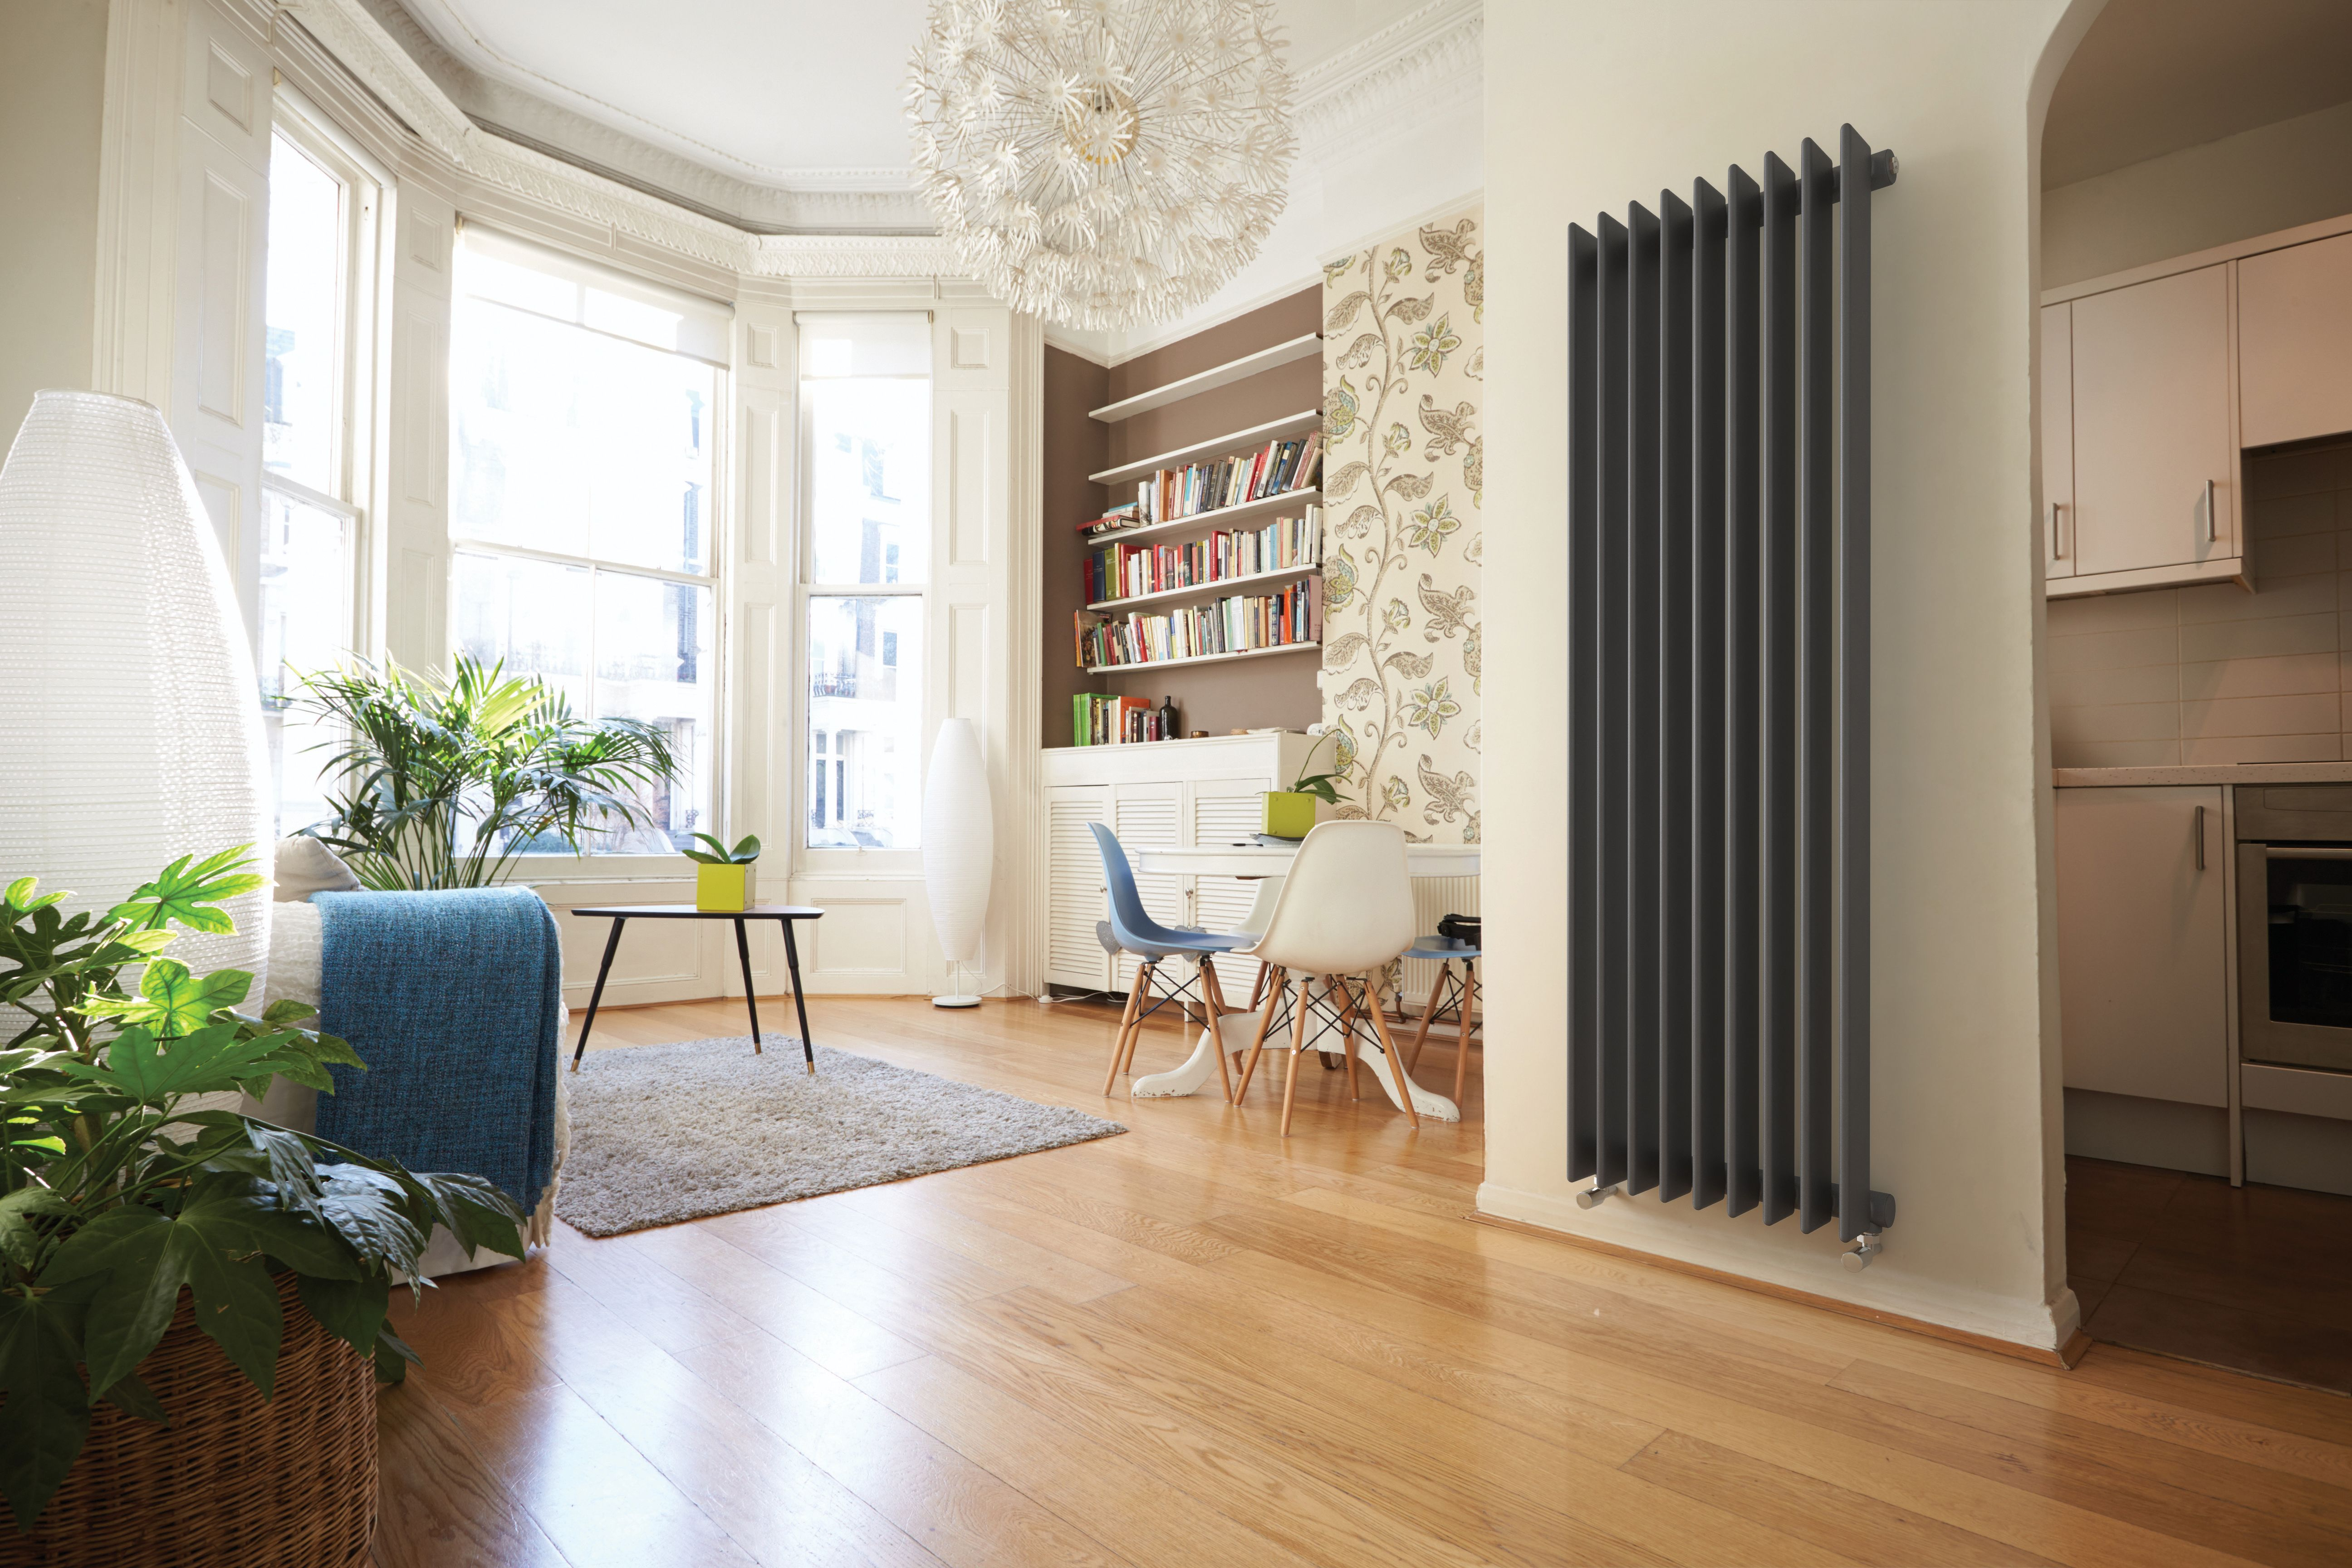 Modern radiator covers design interior decoration courses in